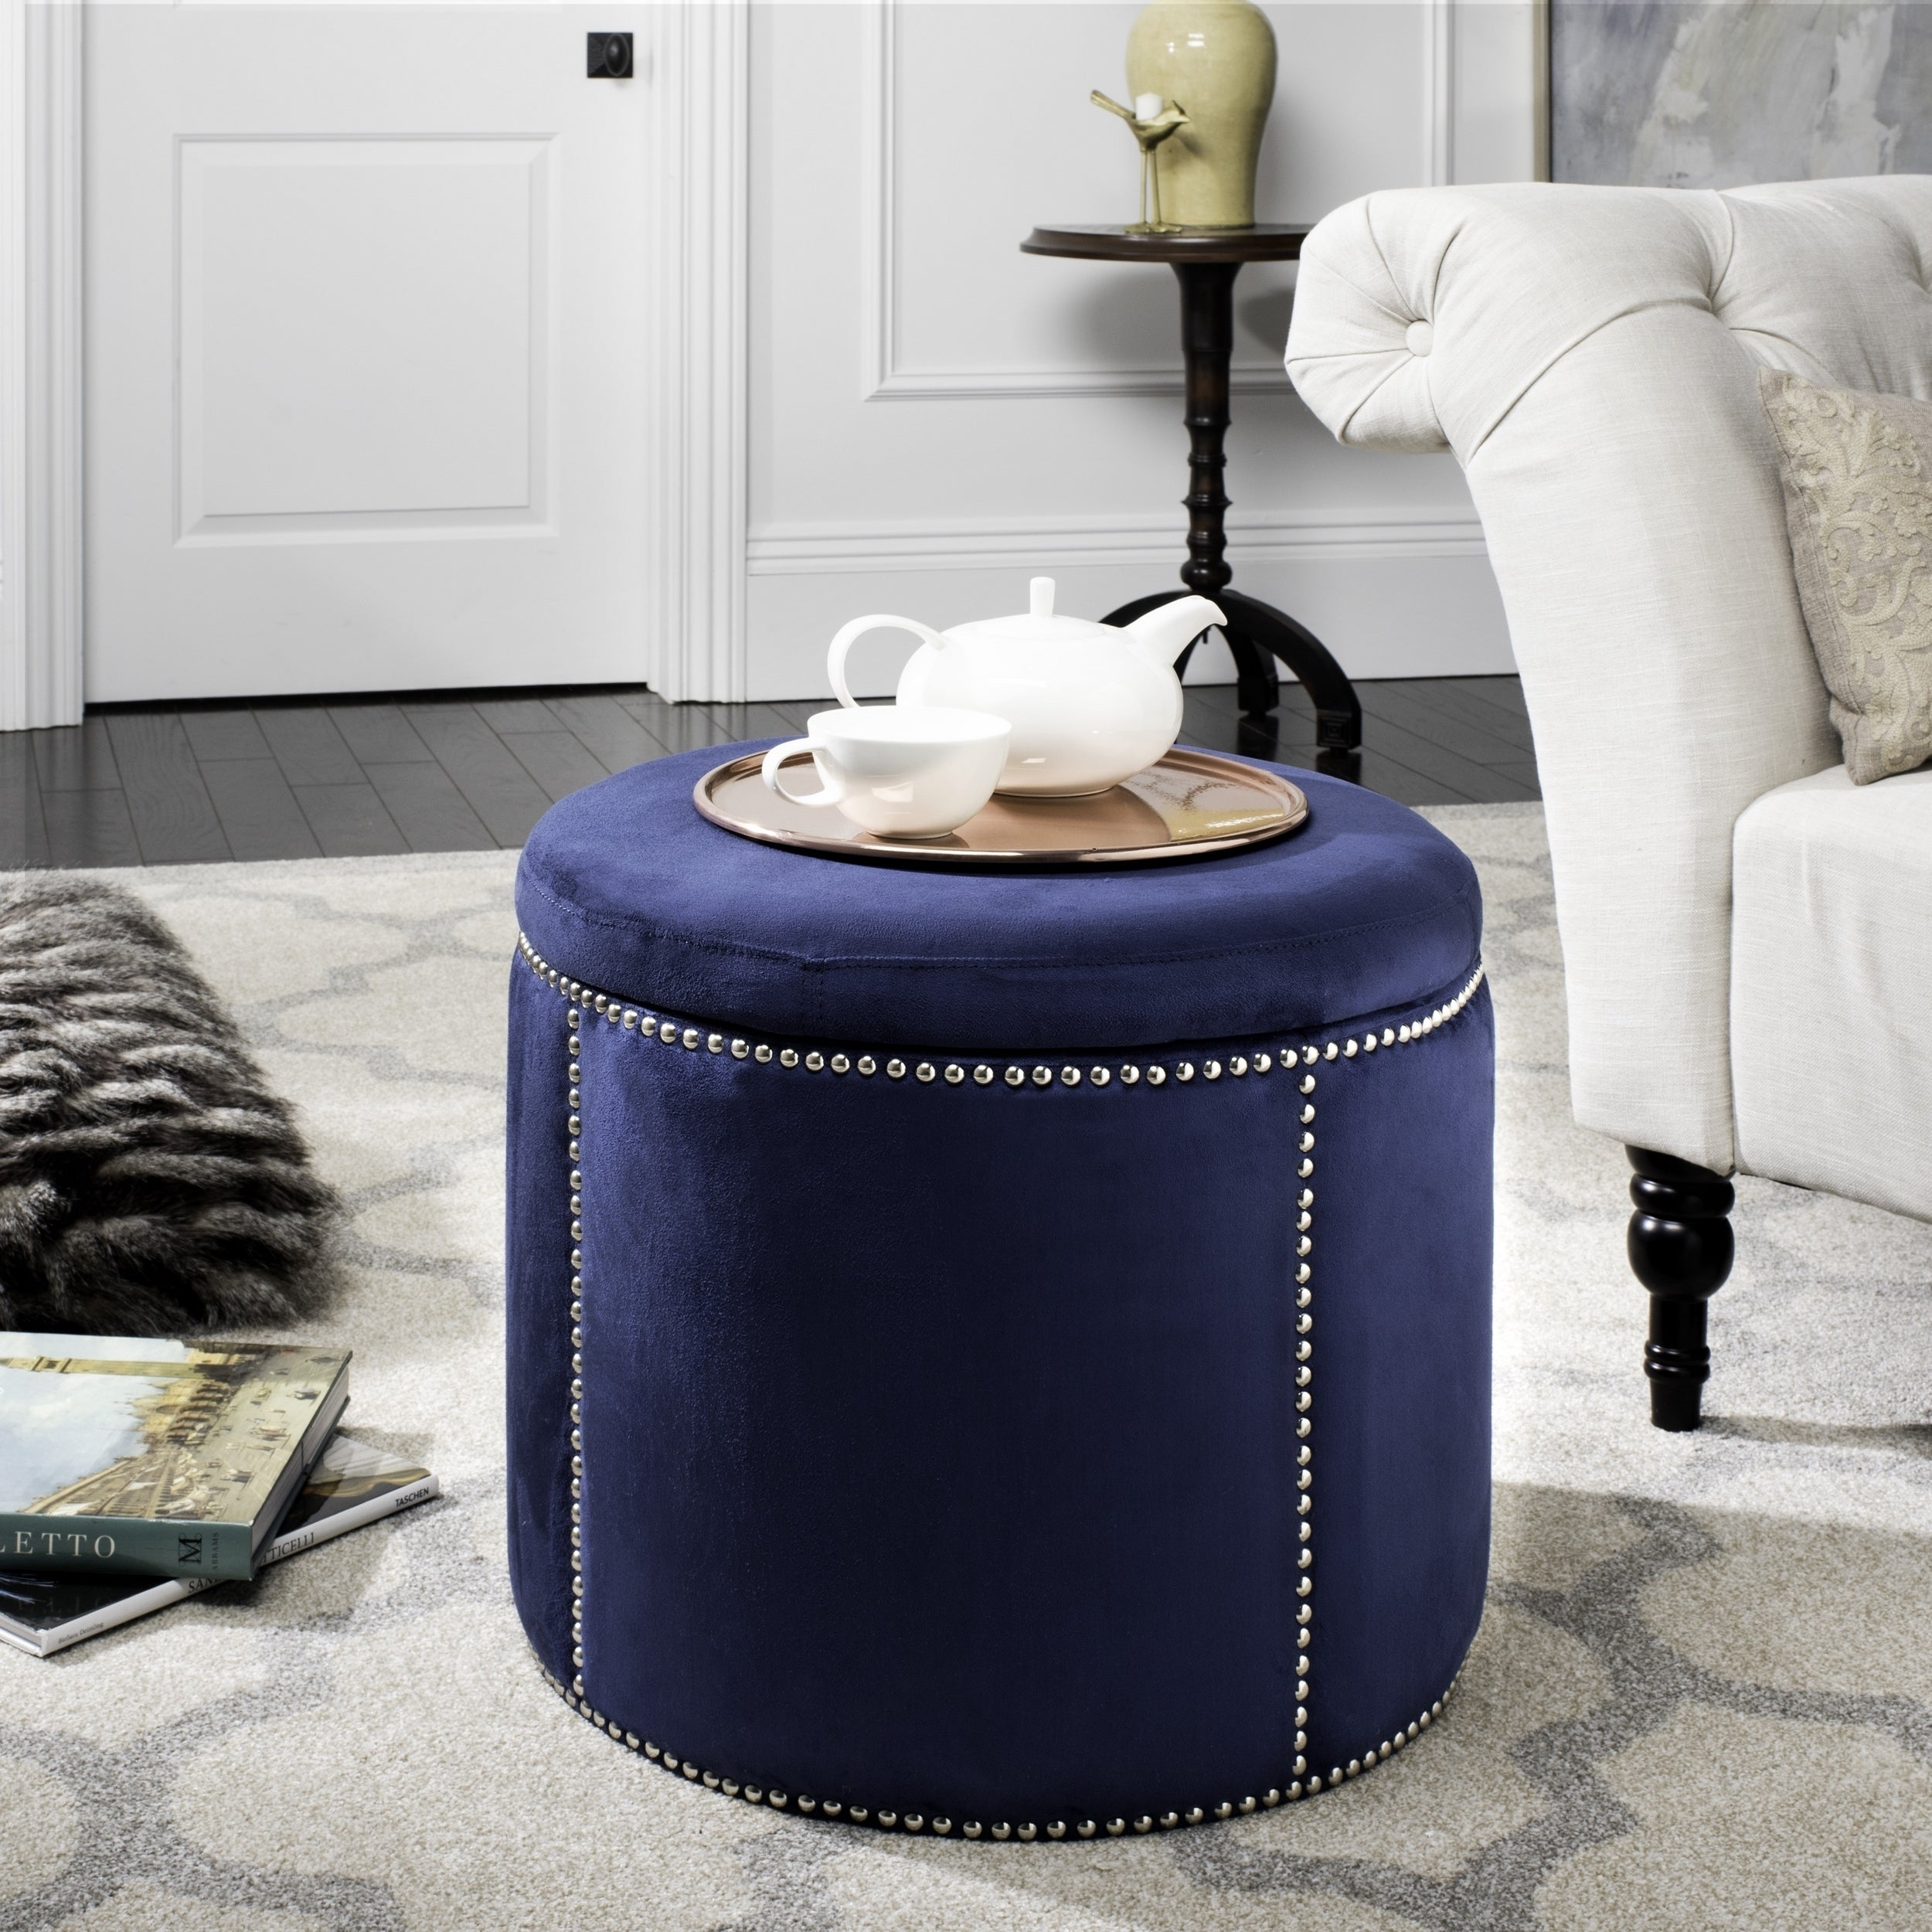 Admirable Safavieh Florentine Navy Nailhead Round Storage Gmtry Best Dining Table And Chair Ideas Images Gmtryco